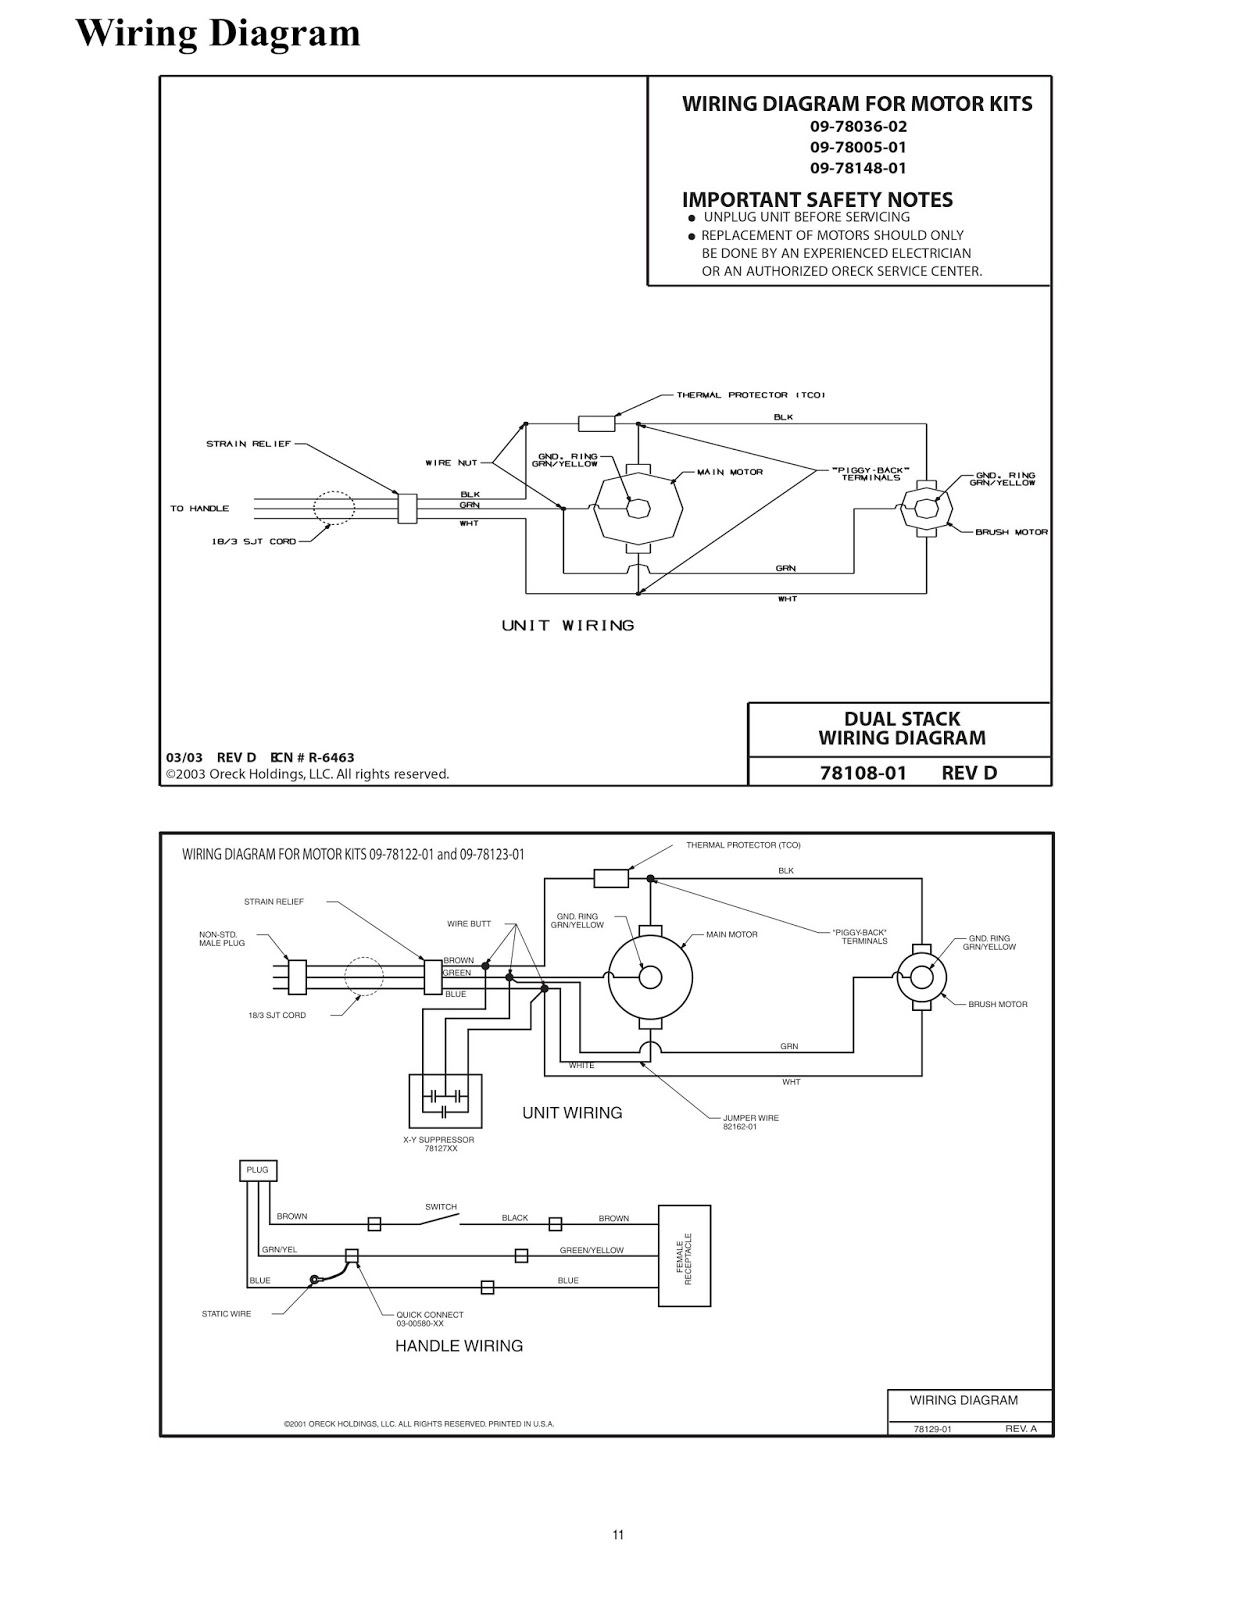 henry hoover wiring diagram   27 wiring diagram images